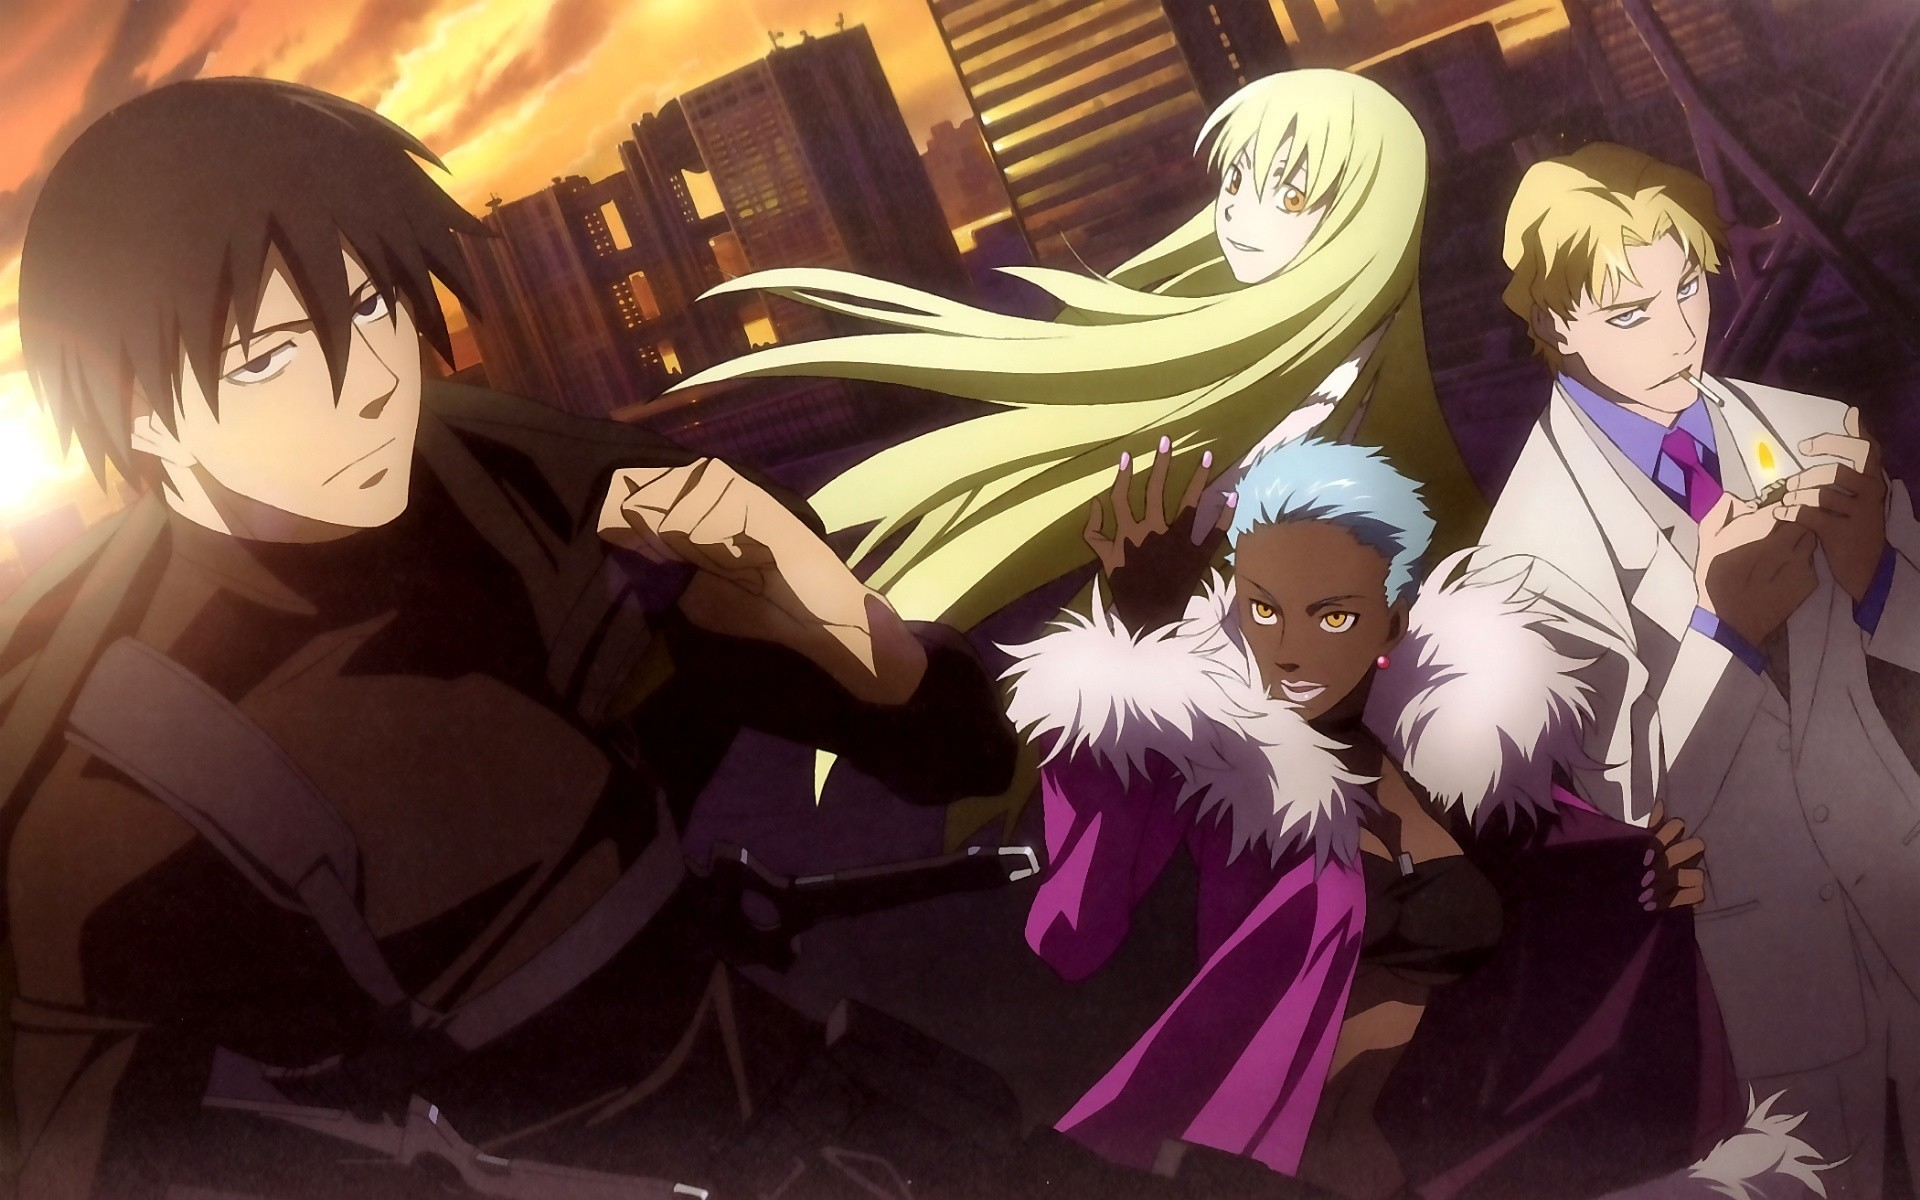 1920x1200 Darker than BLACK - Kuro no Keiyakusha